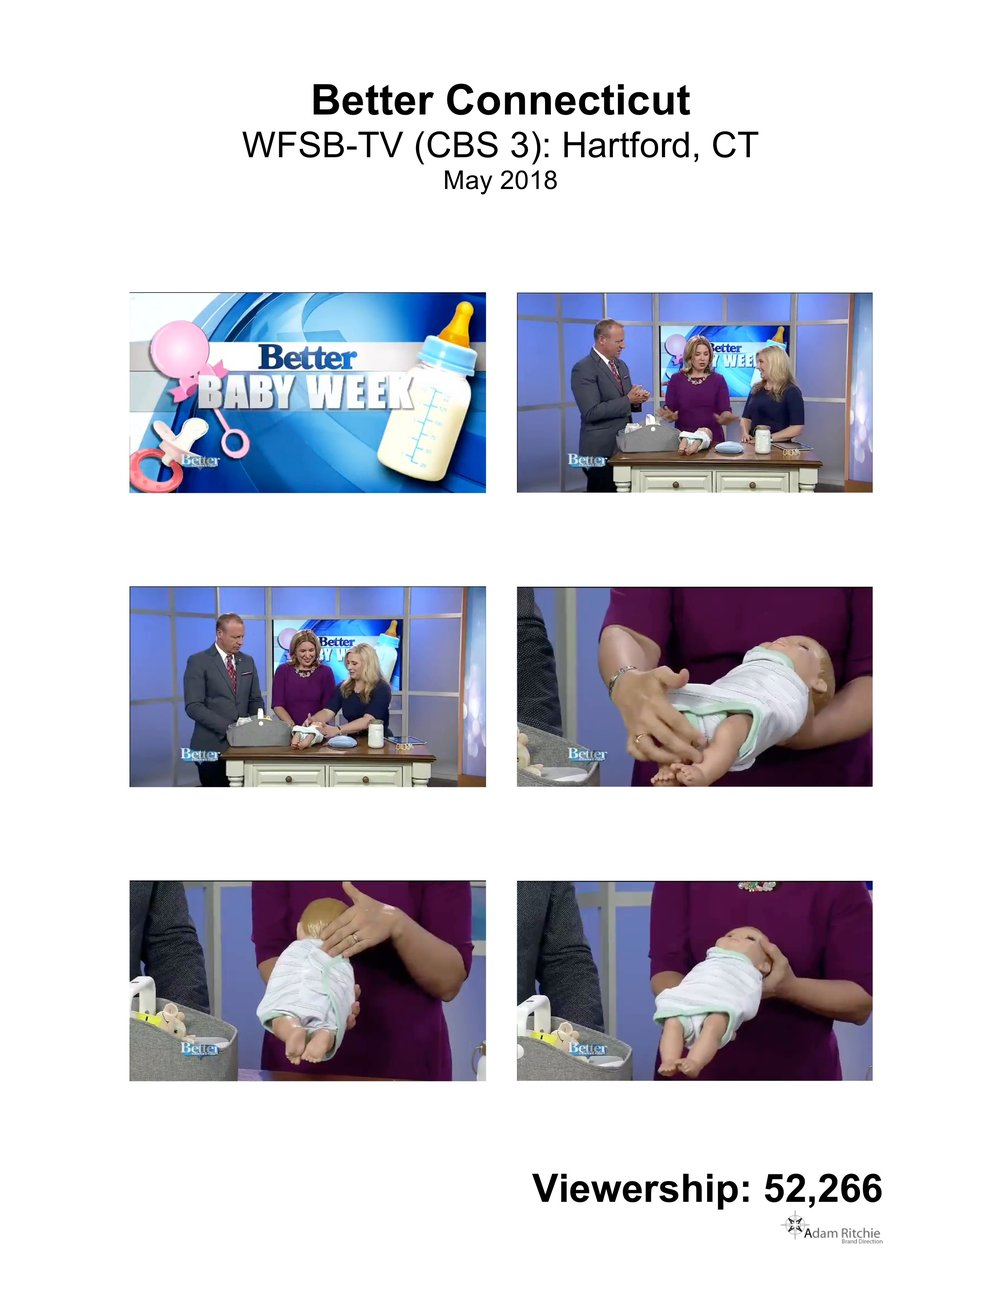 2018.05.07-05.13_WFSB-TV (CBS 3) [Better Connecticut]_SwaddleMe Kicksie.jpeg